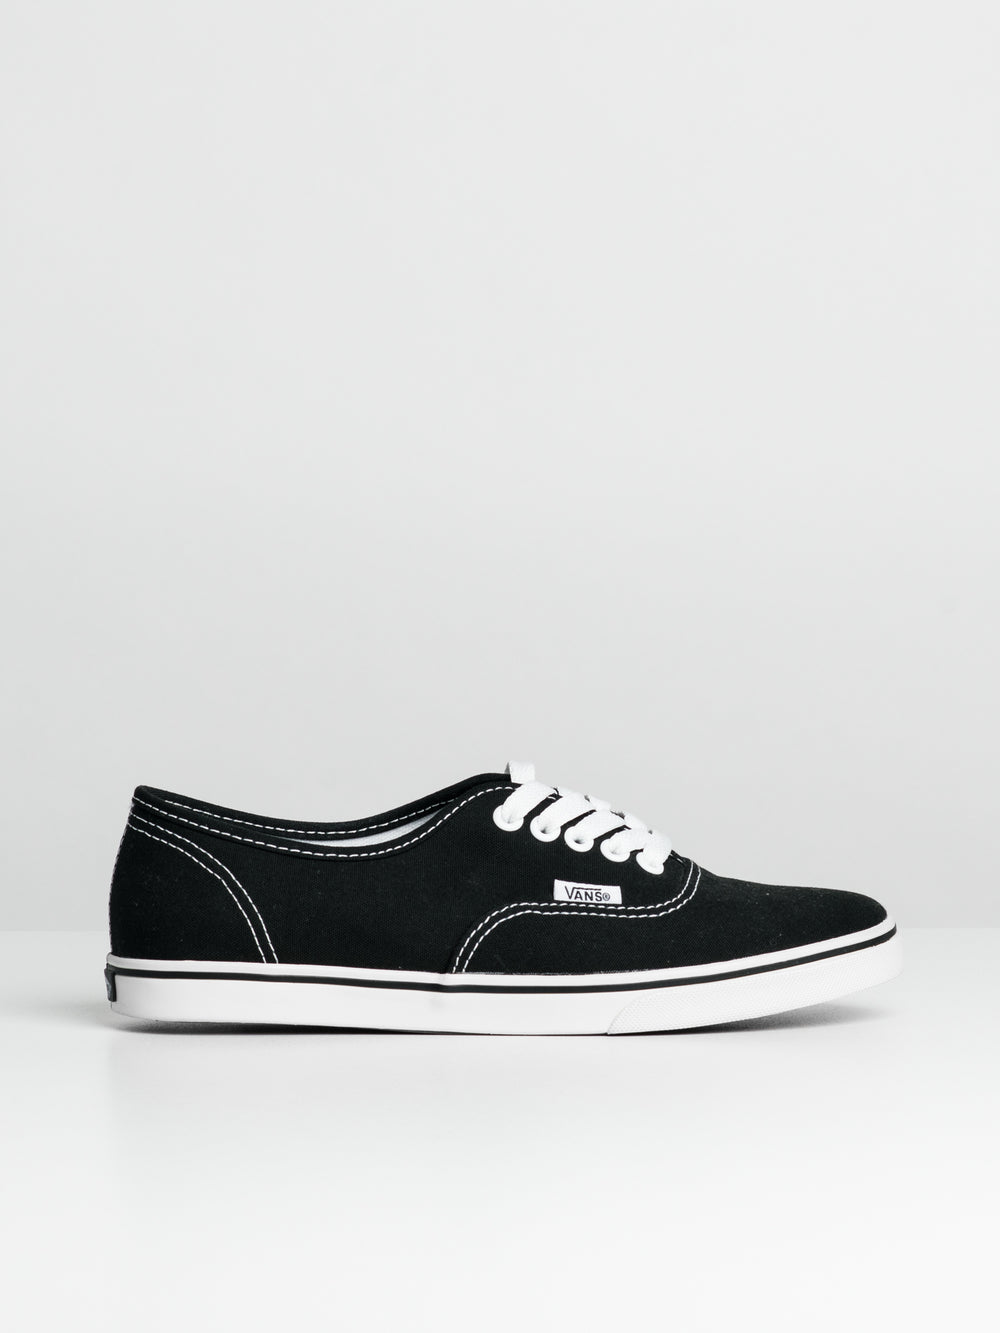 WOMENS AUTH LO PRO CANVAS SHOES